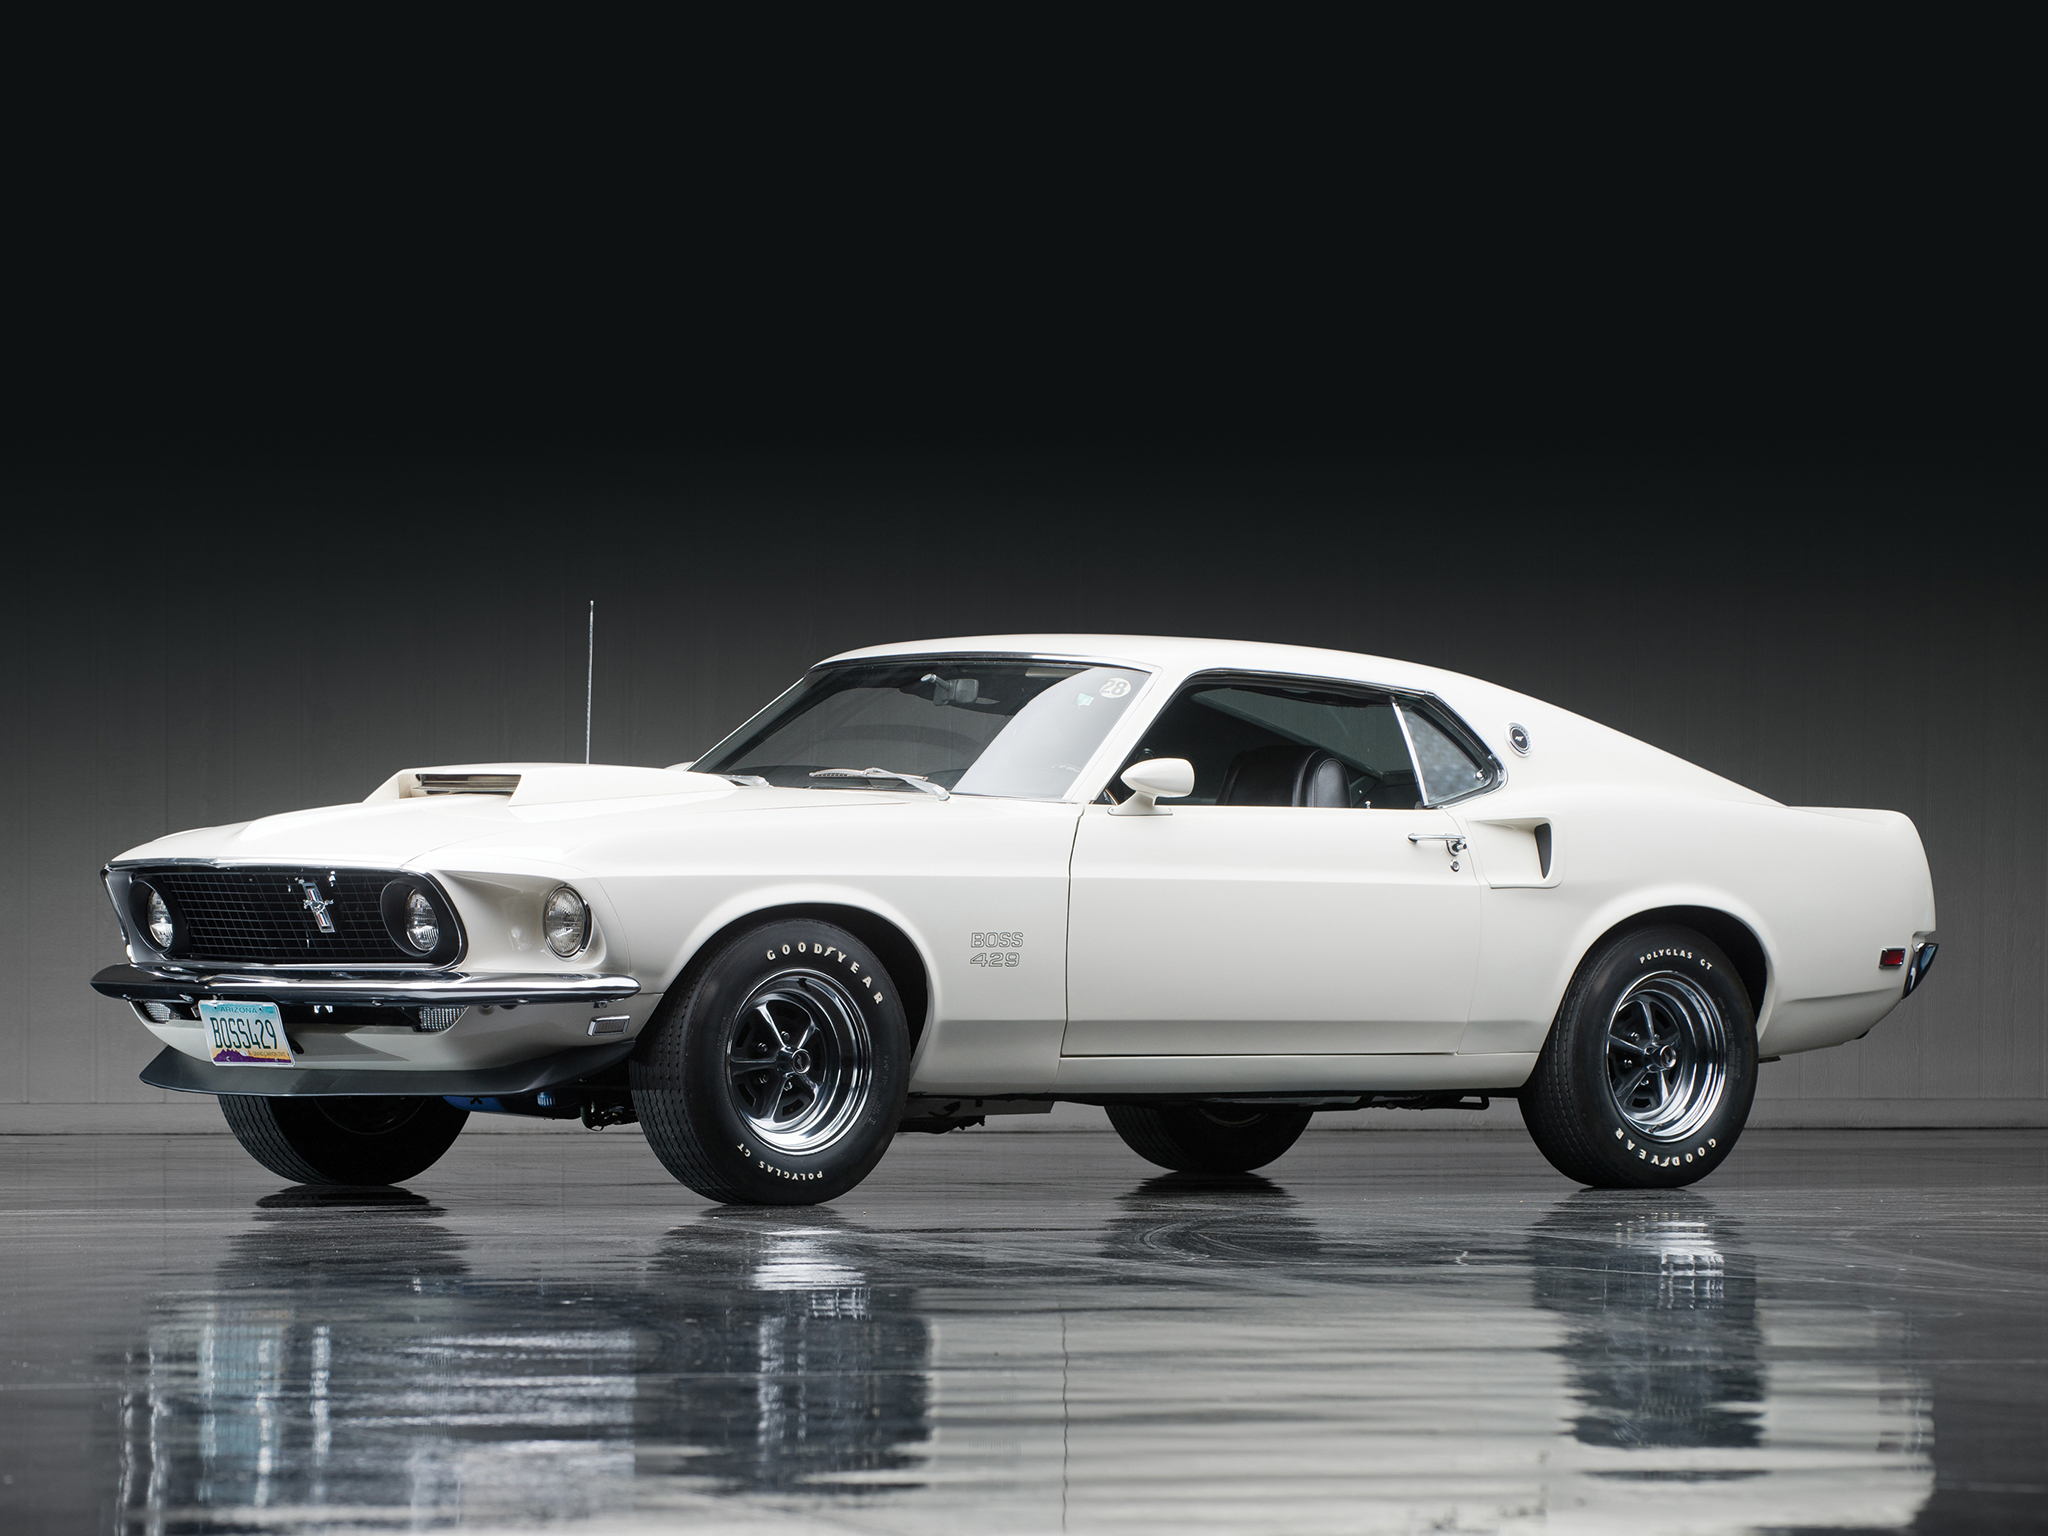 1969 ford mustang boss 429 hd wallpaper background image 2048x1536 id 402827 wallpaper abyss. Black Bedroom Furniture Sets. Home Design Ideas